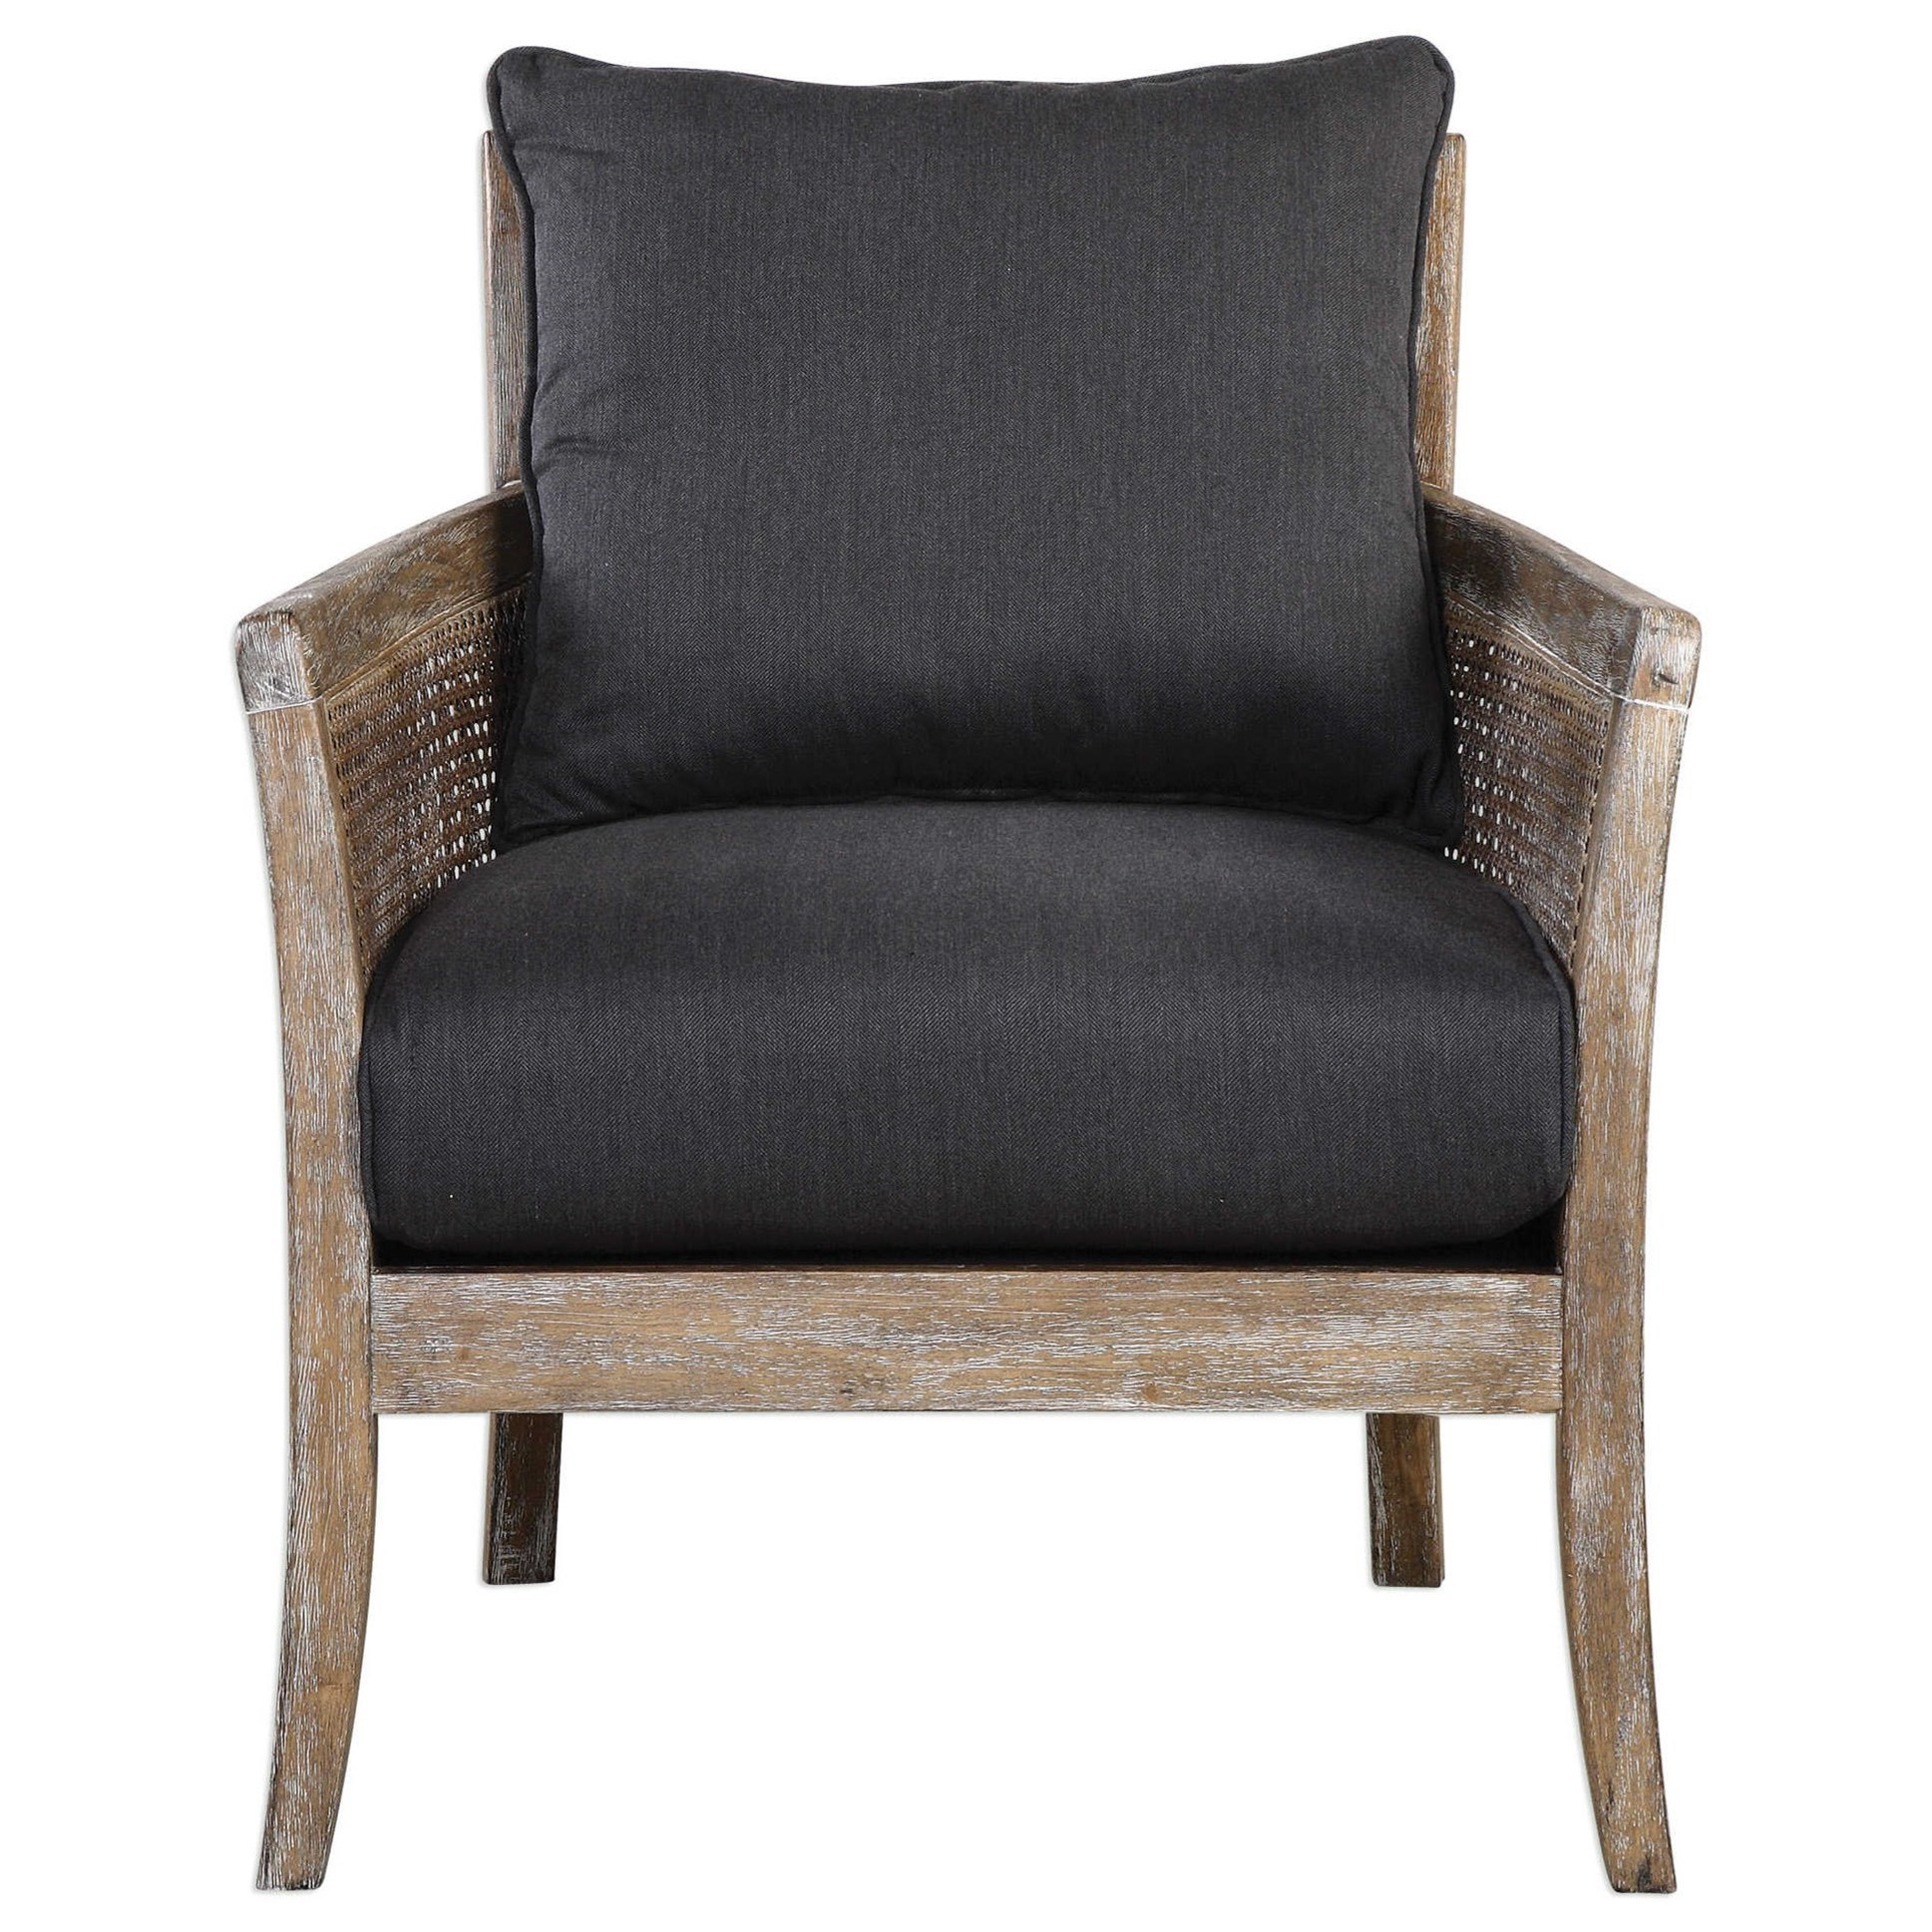 Accent Furniture - Accent Chairs Encore Dark Gray Armchair by Uttermost at Suburban Furniture